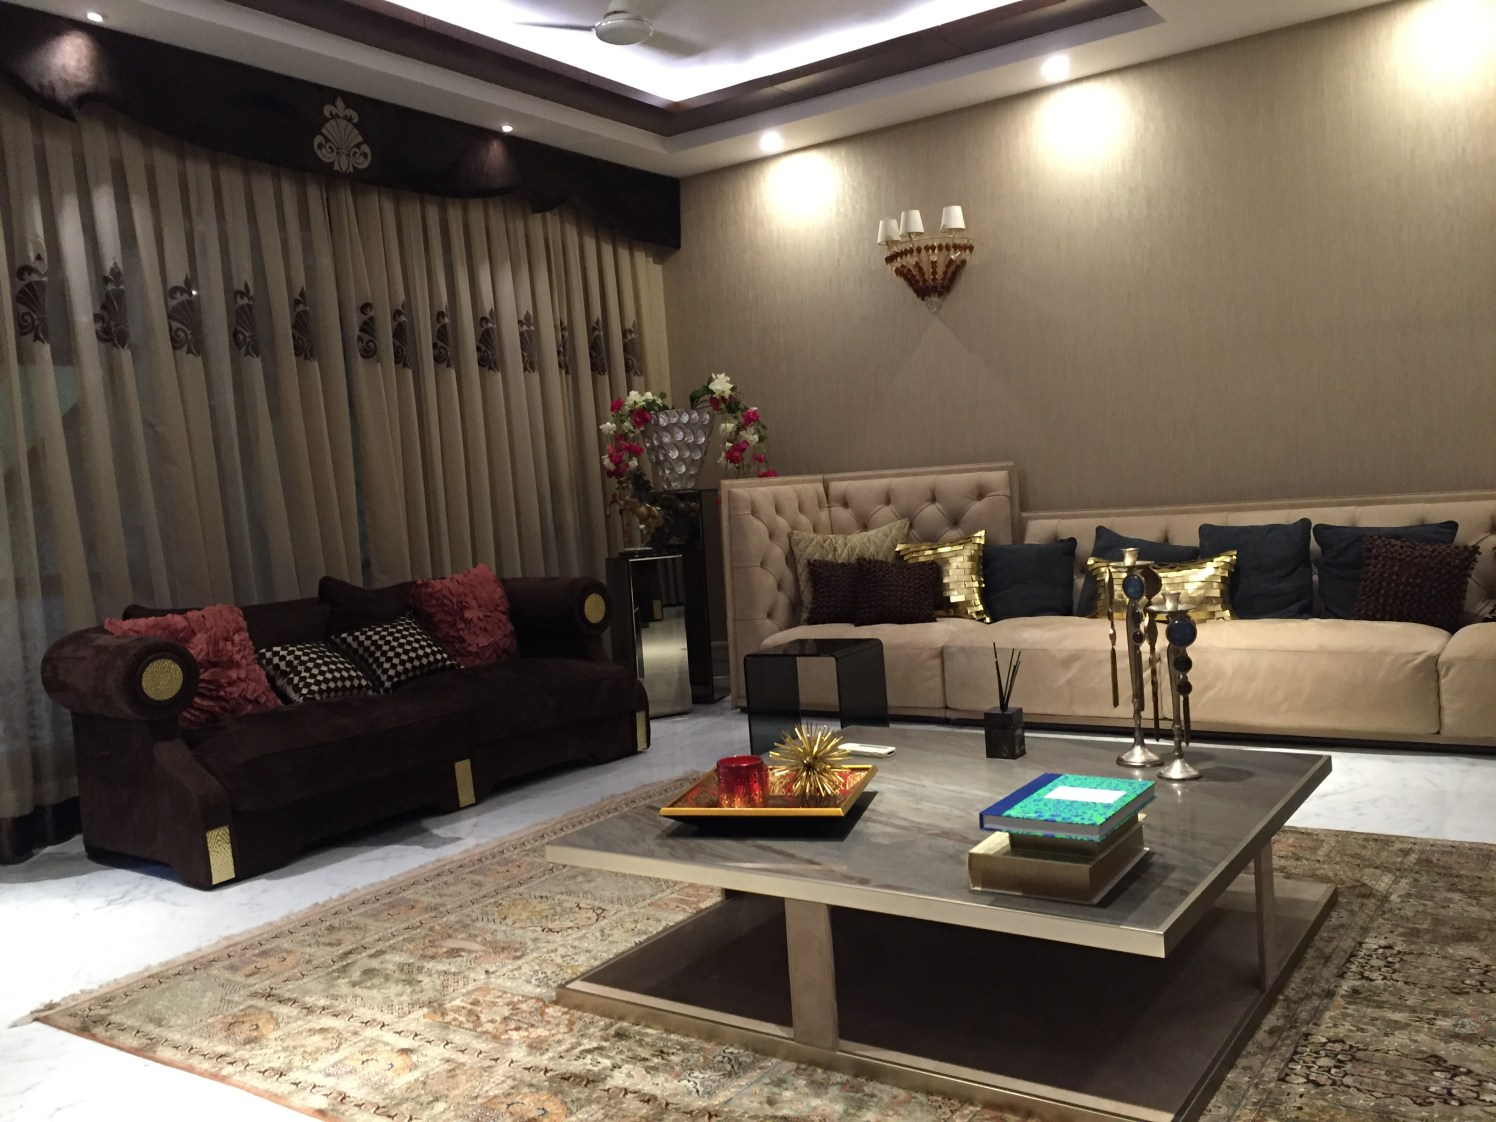 Beige themed Traditional Living Room With Sectional Sofa by Tarique Anwar Living-room Traditional | Interior Design Photos & Ideas